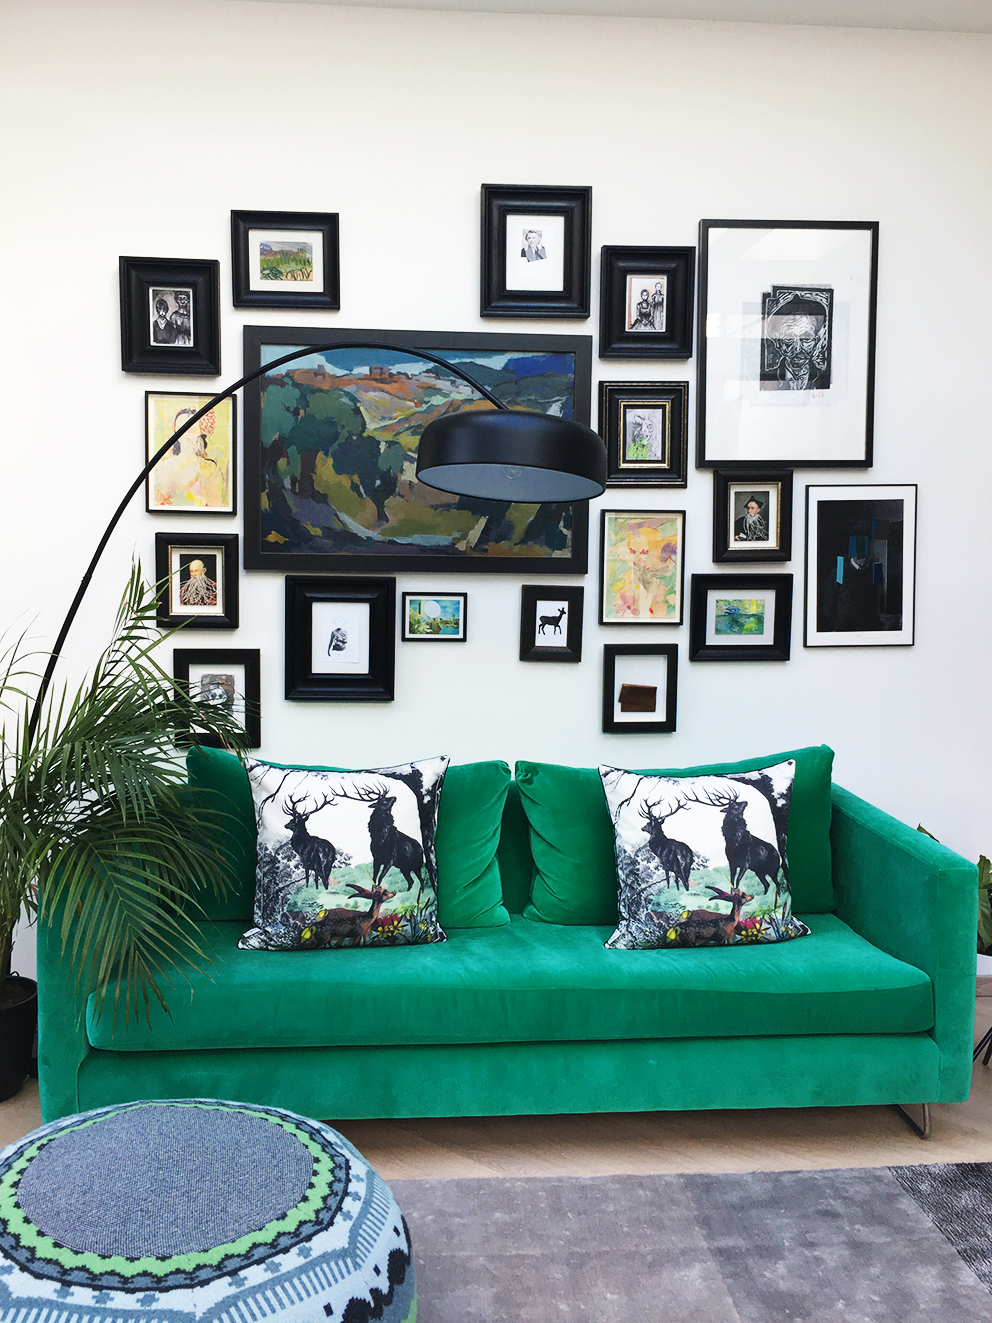 French For Pineapple Blog - Living Etc House Tours with AO